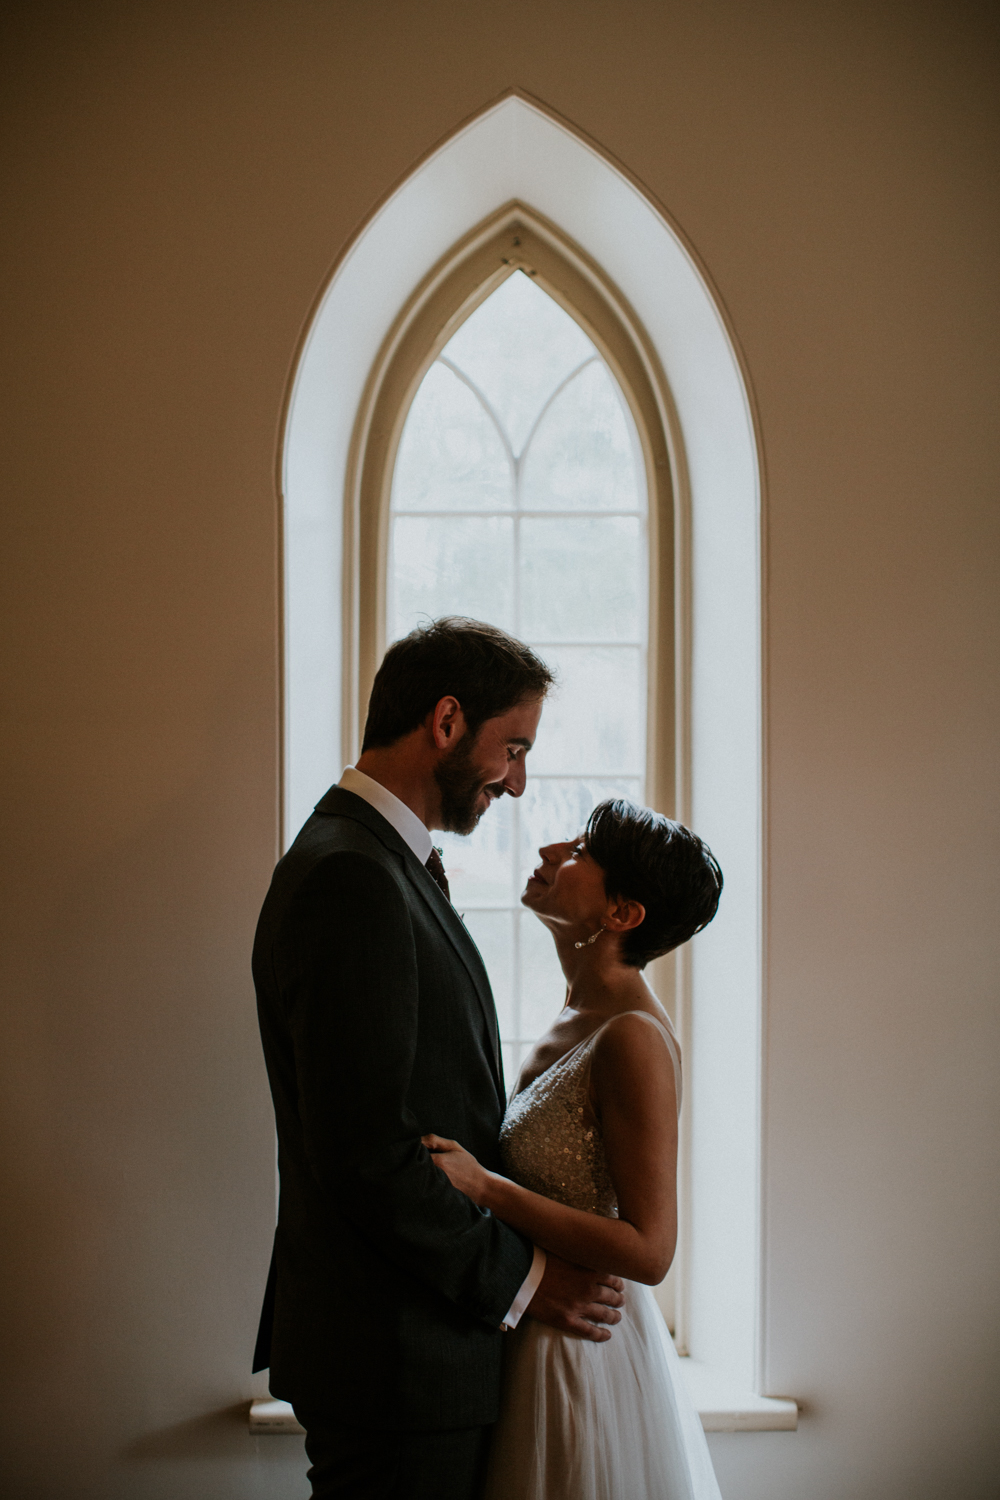 bride and groom portraits at enoch turner school house in Toronto Ontario